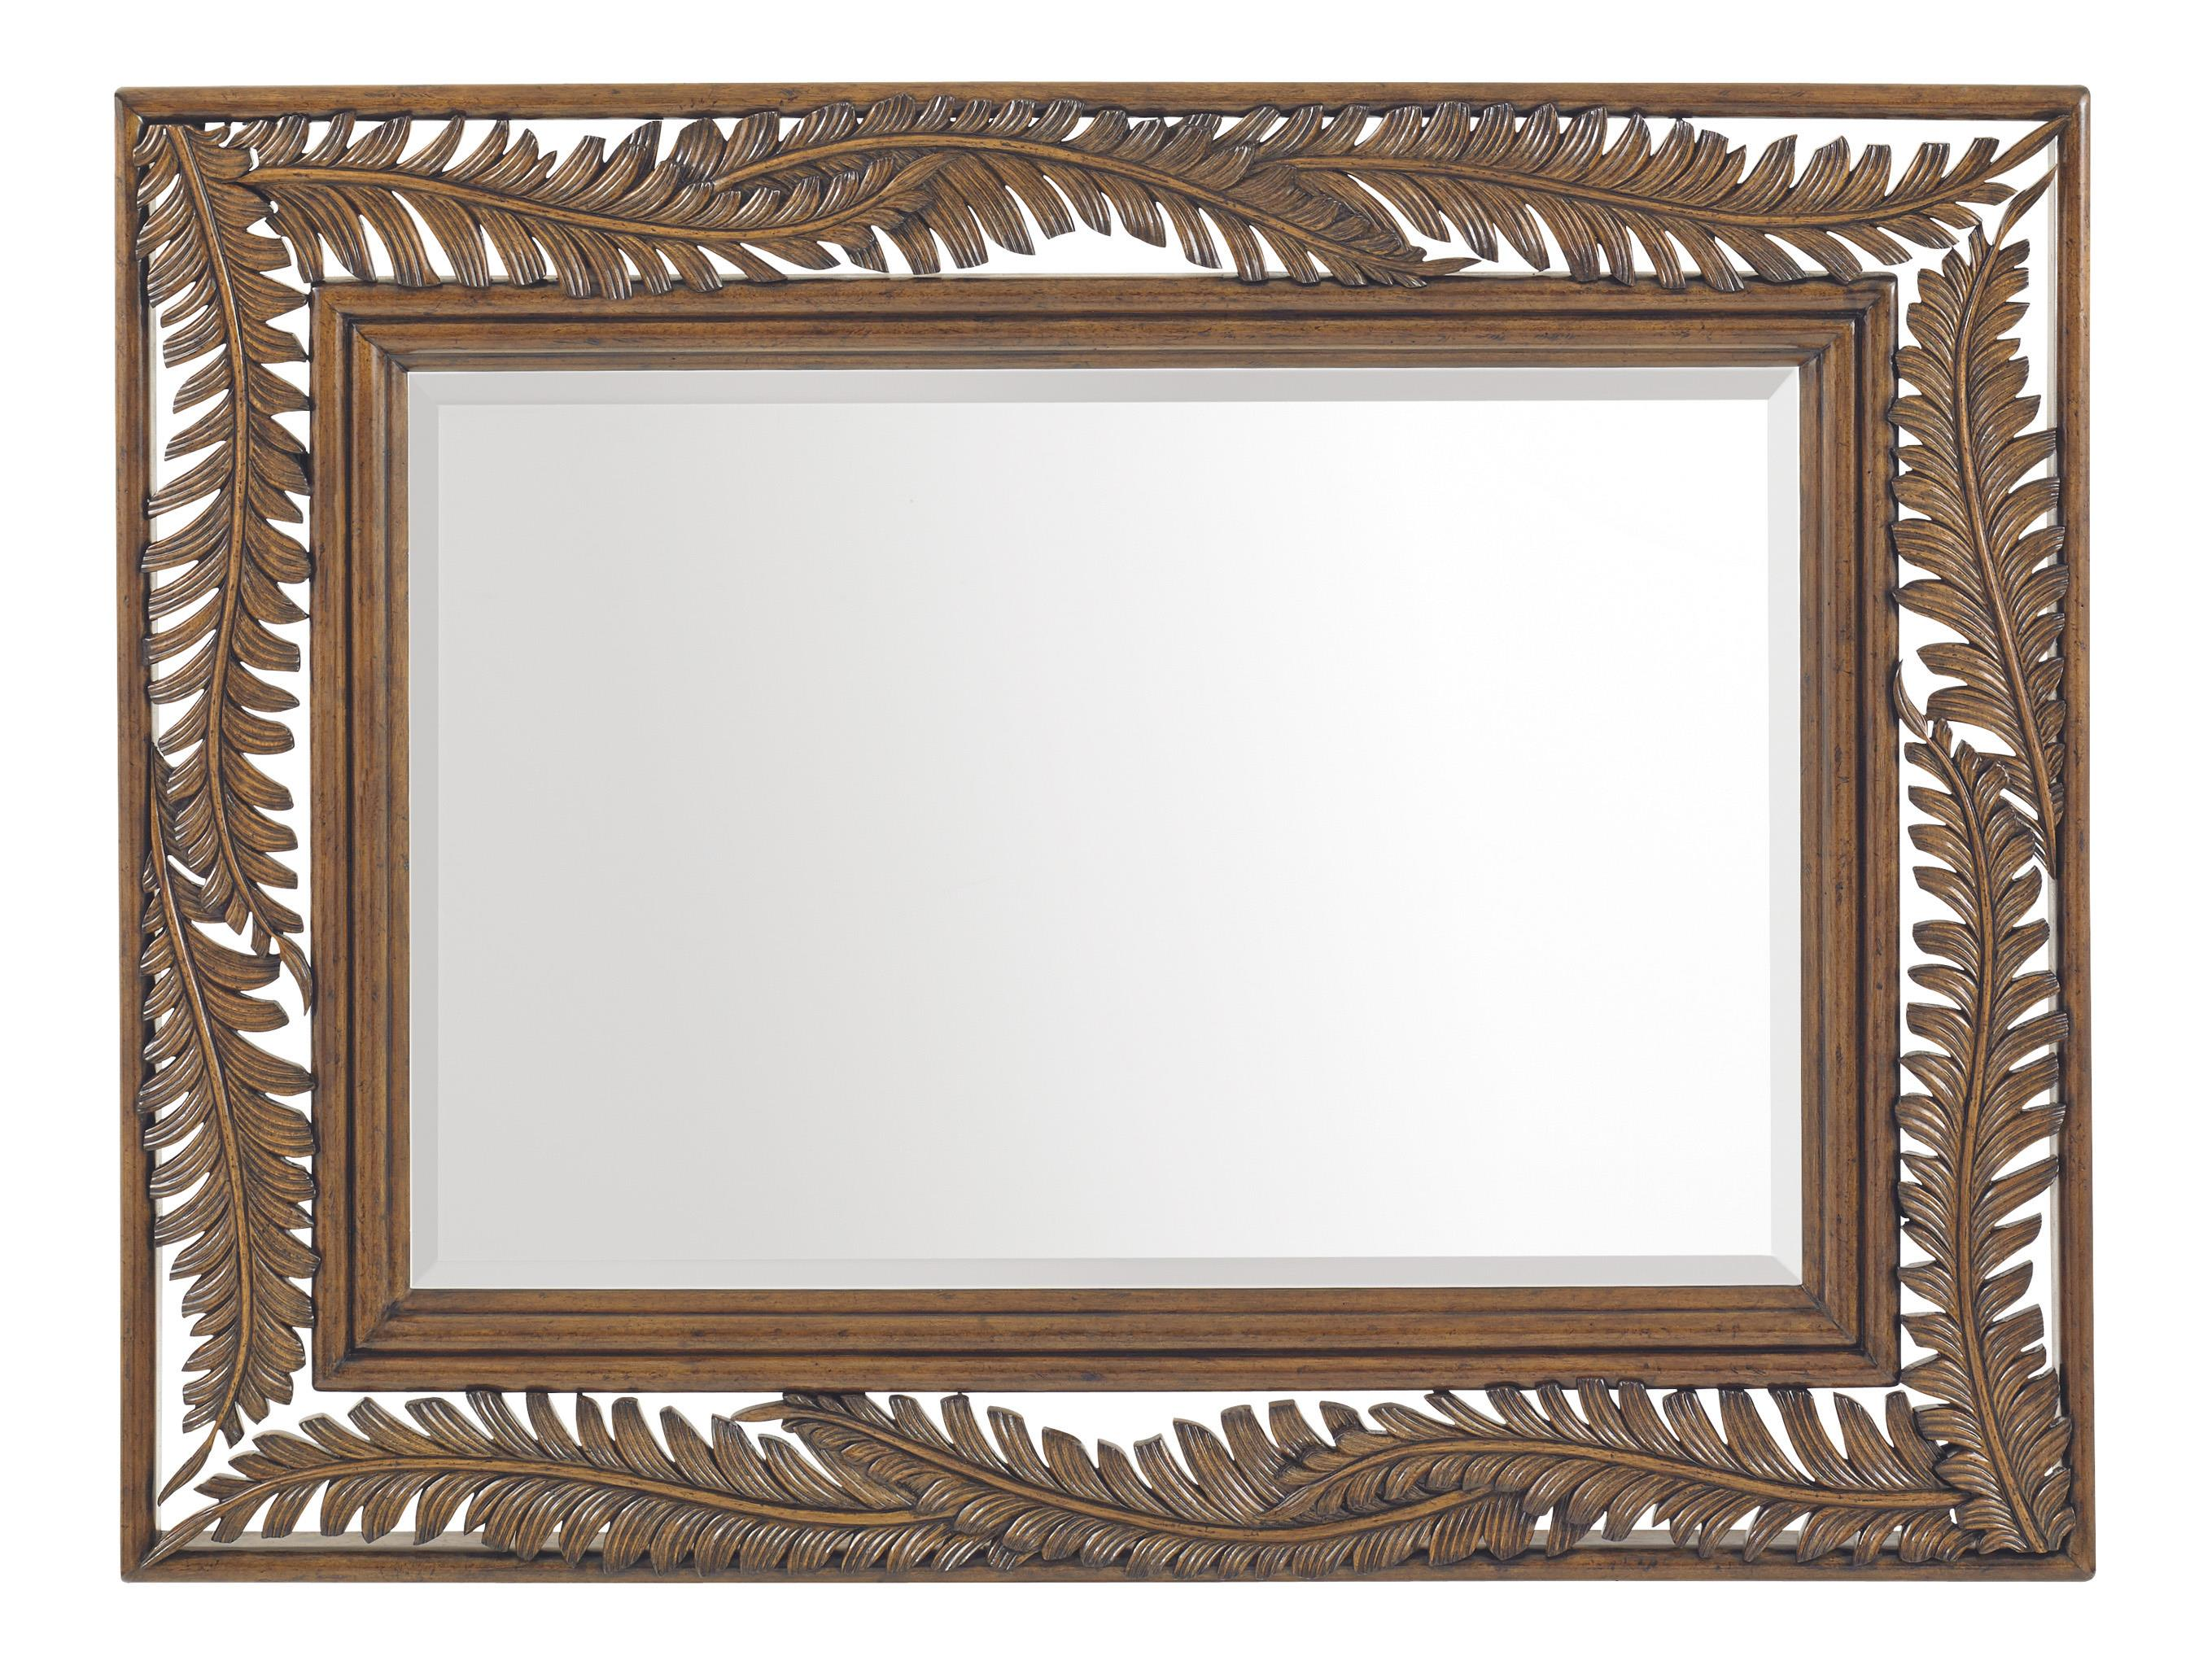 Bali Hai Seabrook Landscape Mirror by Tommy Bahama Home at Baer's Furniture